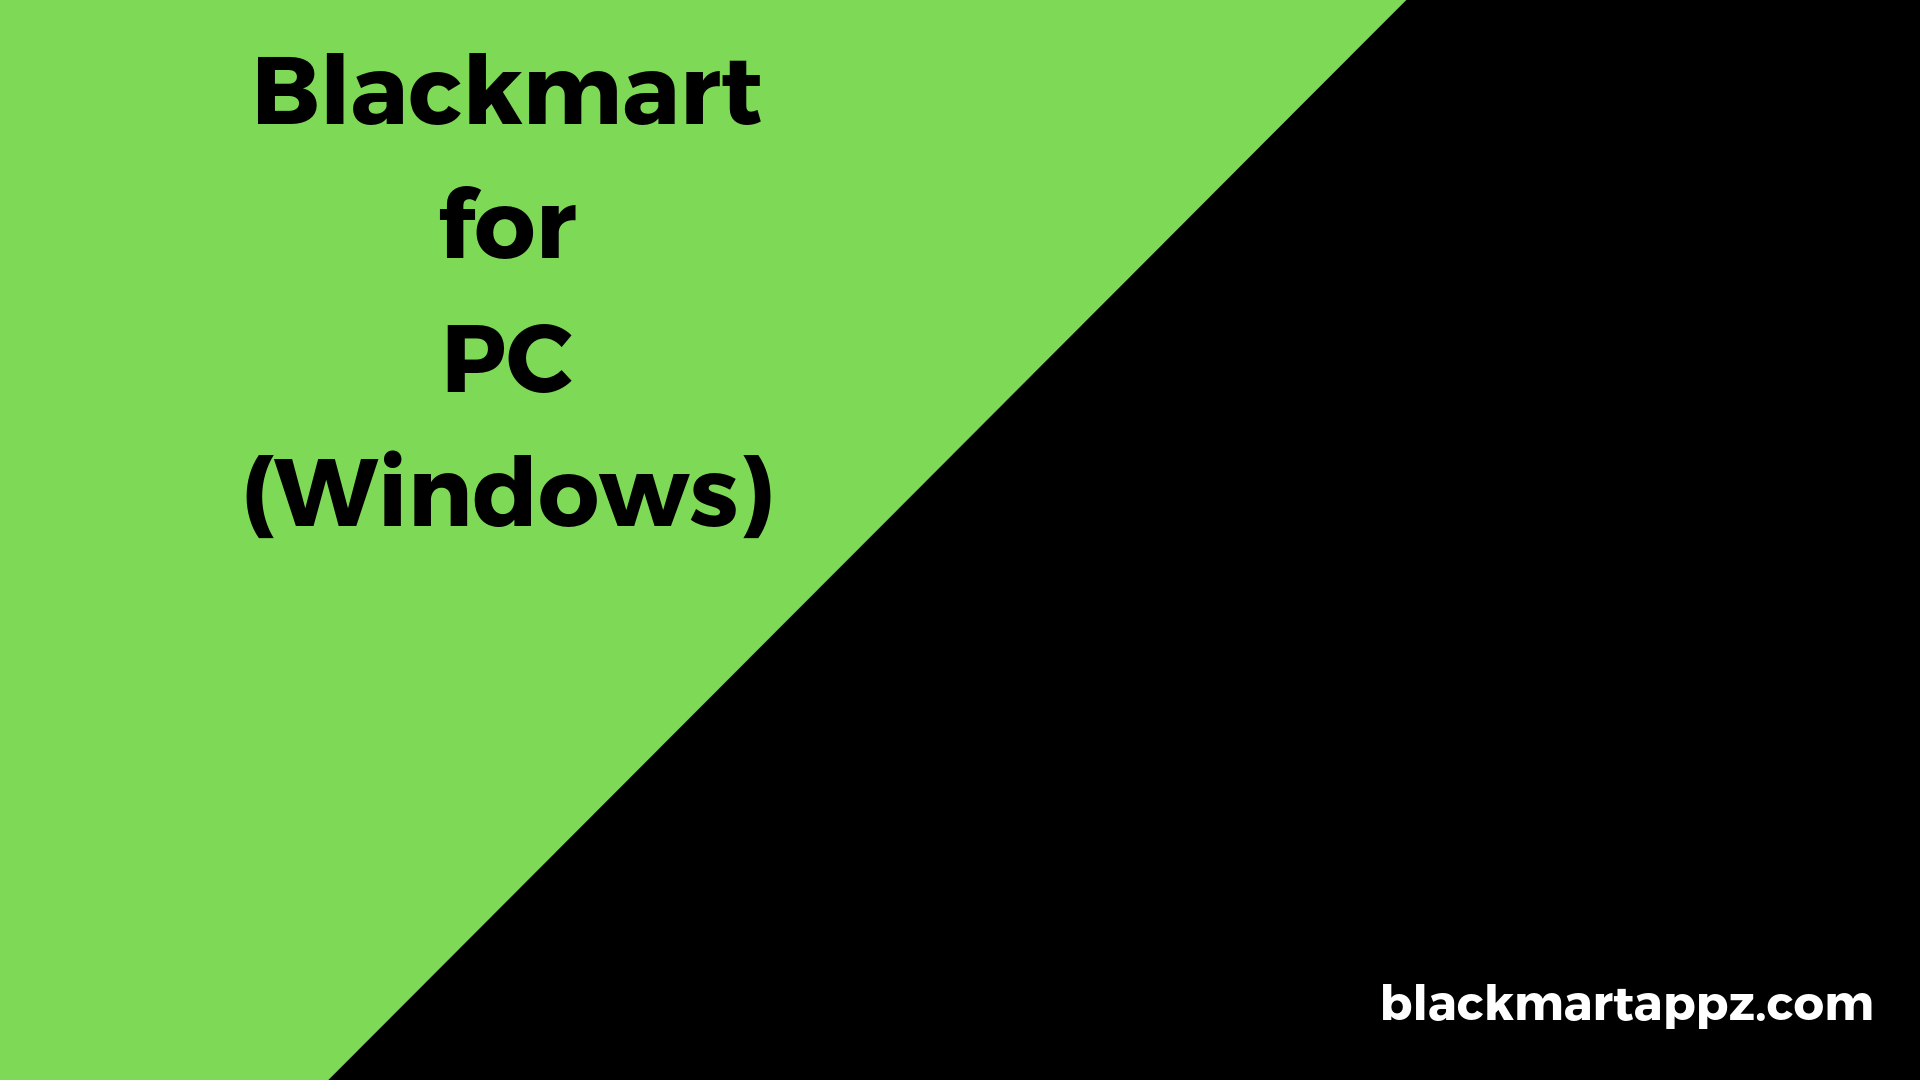 Blackmart for PC